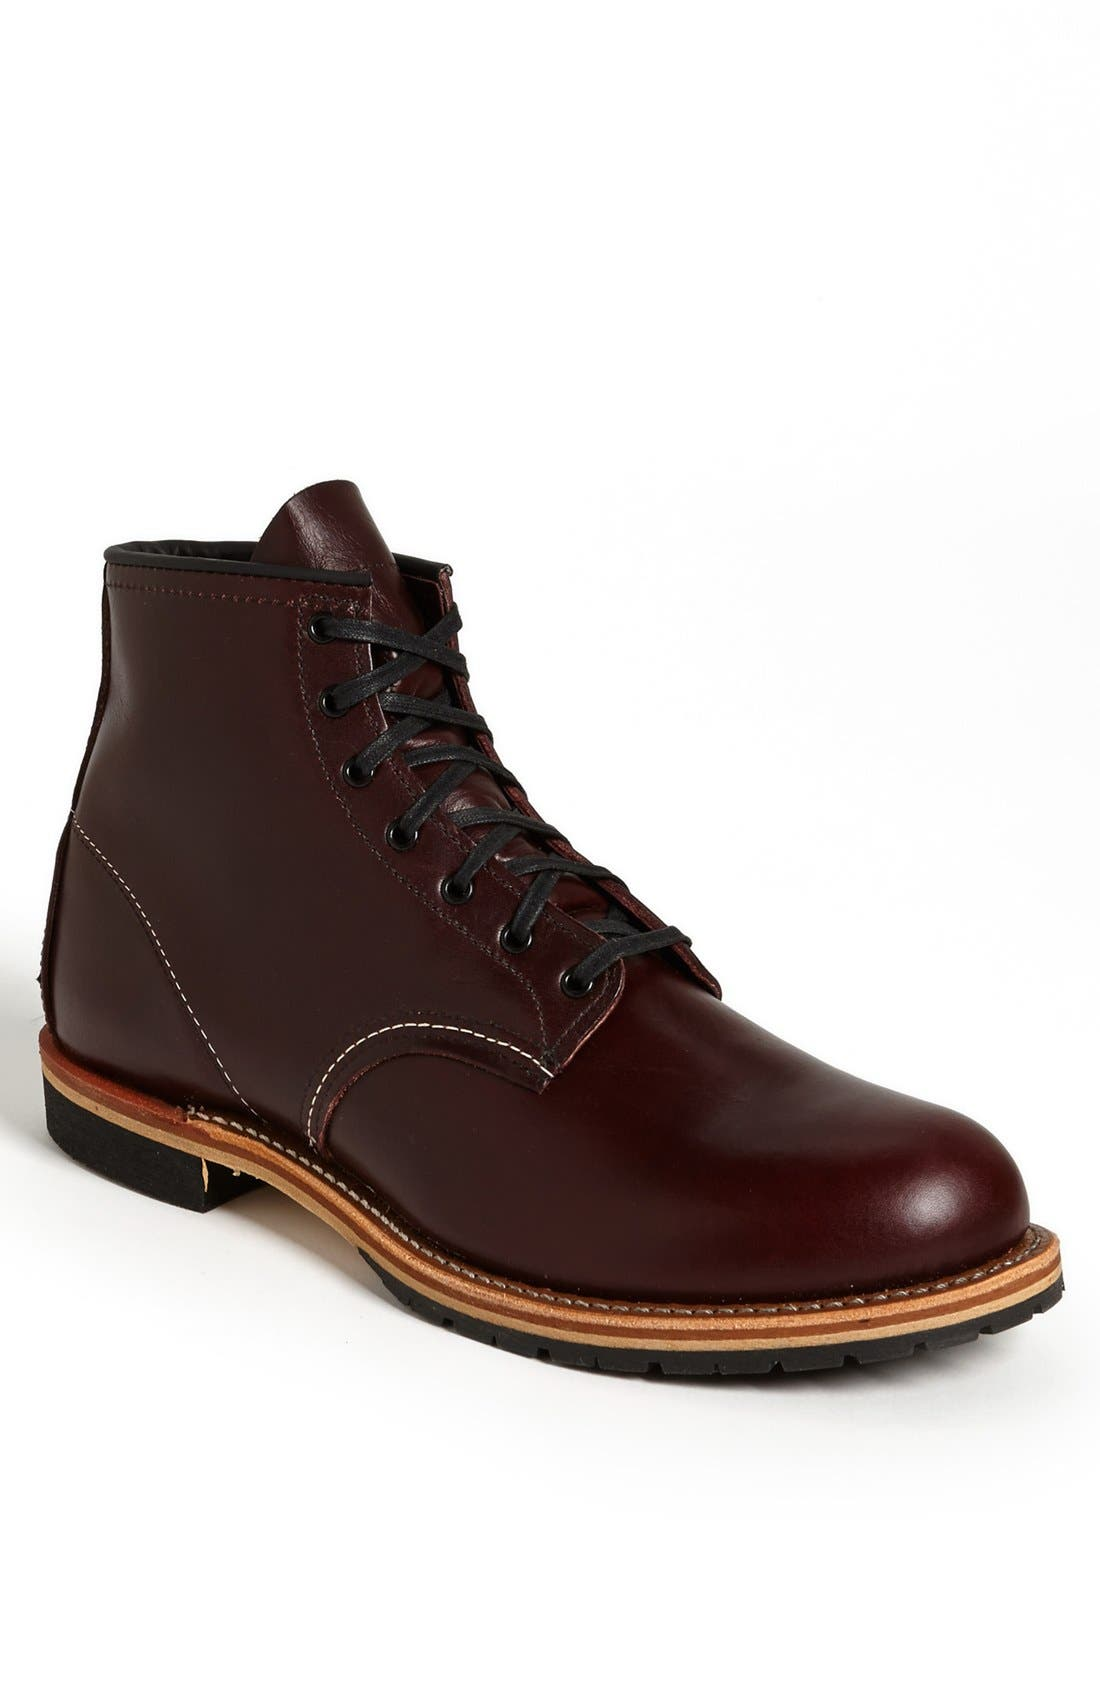 'Beckman' Boot,                             Main thumbnail 1, color,                             002